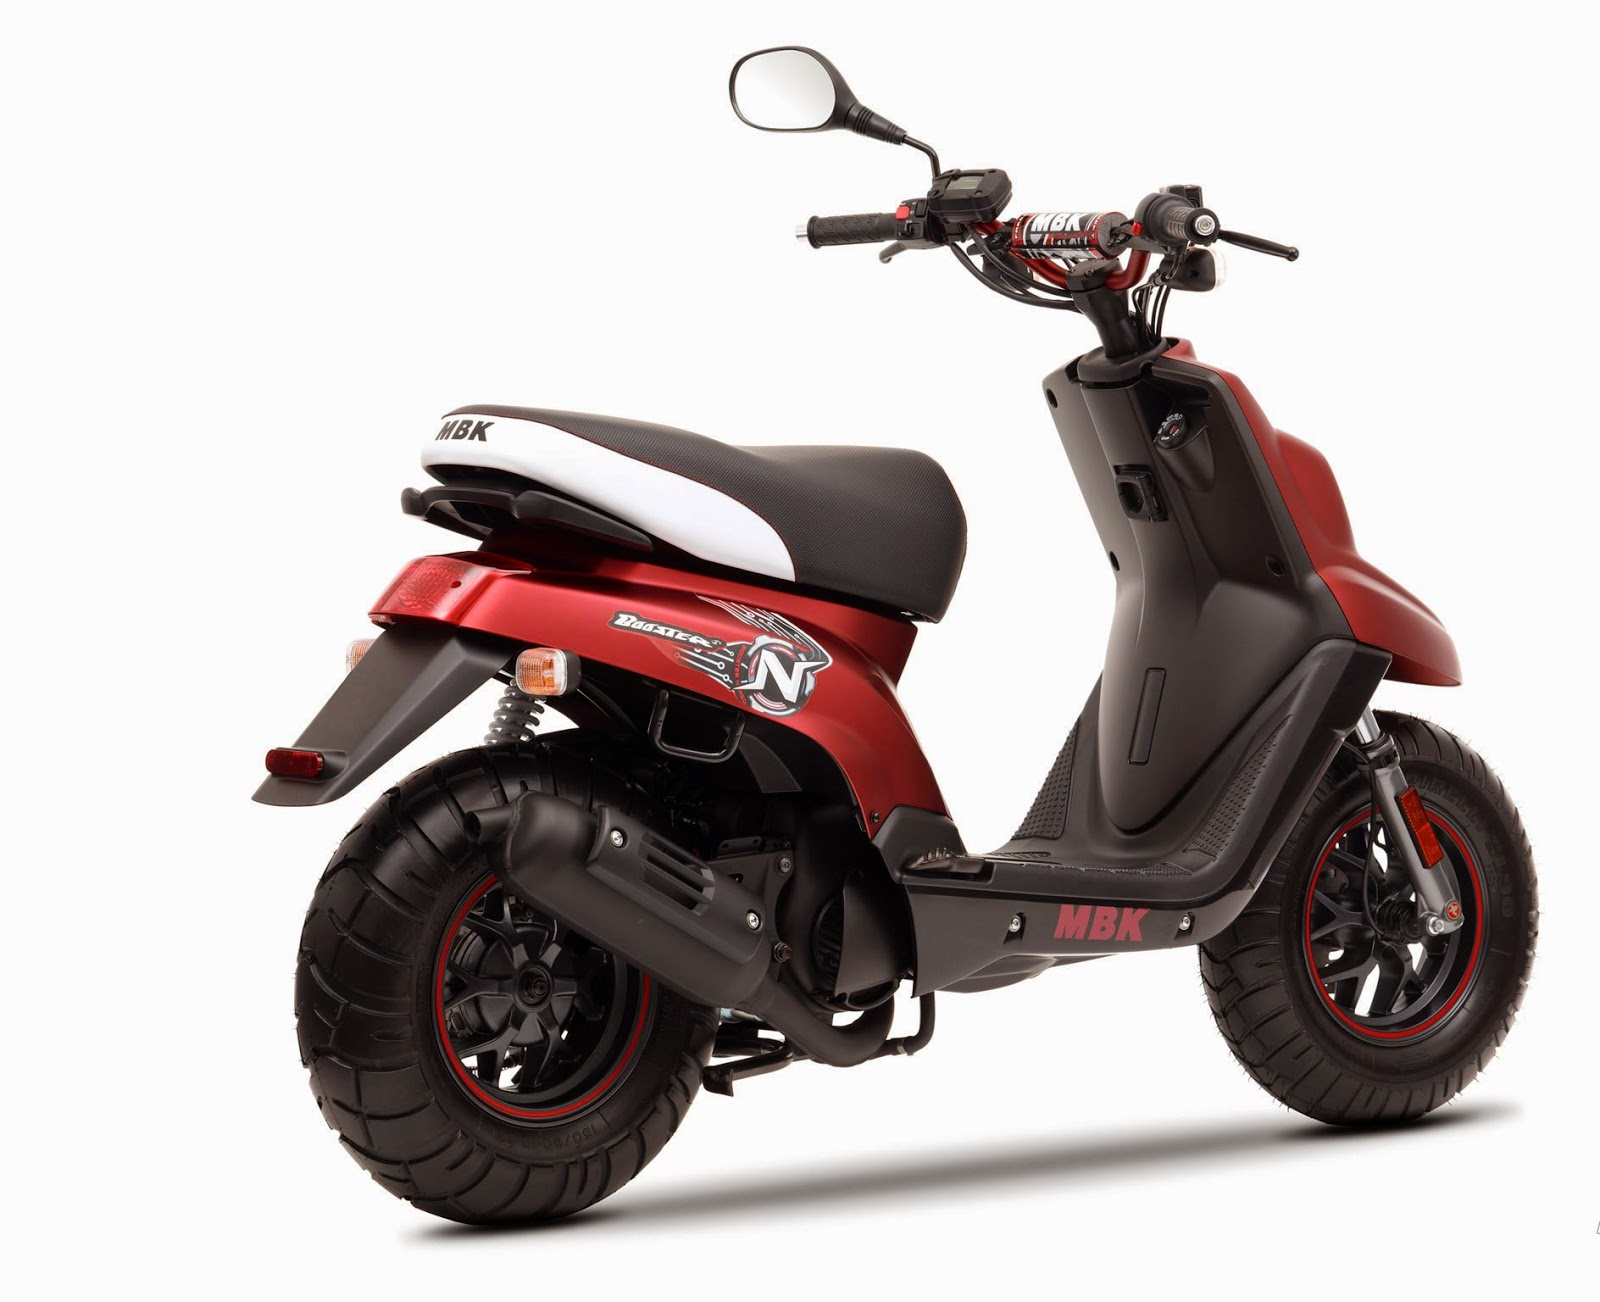 MBK Booster Naked New Scooty Price